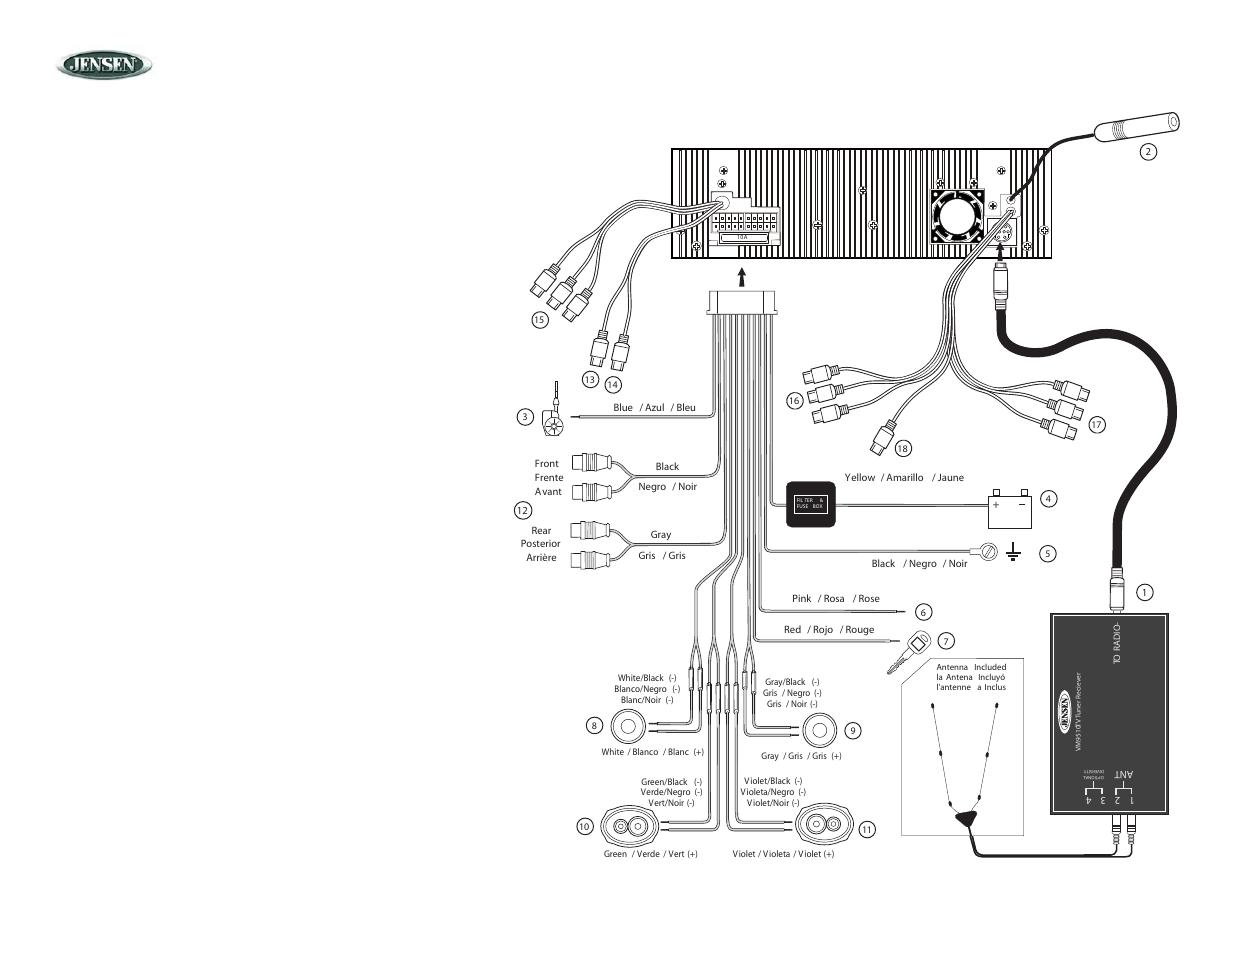 jensen interceptor 3 wiring diagram auto electrical. Black Bedroom Furniture Sets. Home Design Ideas